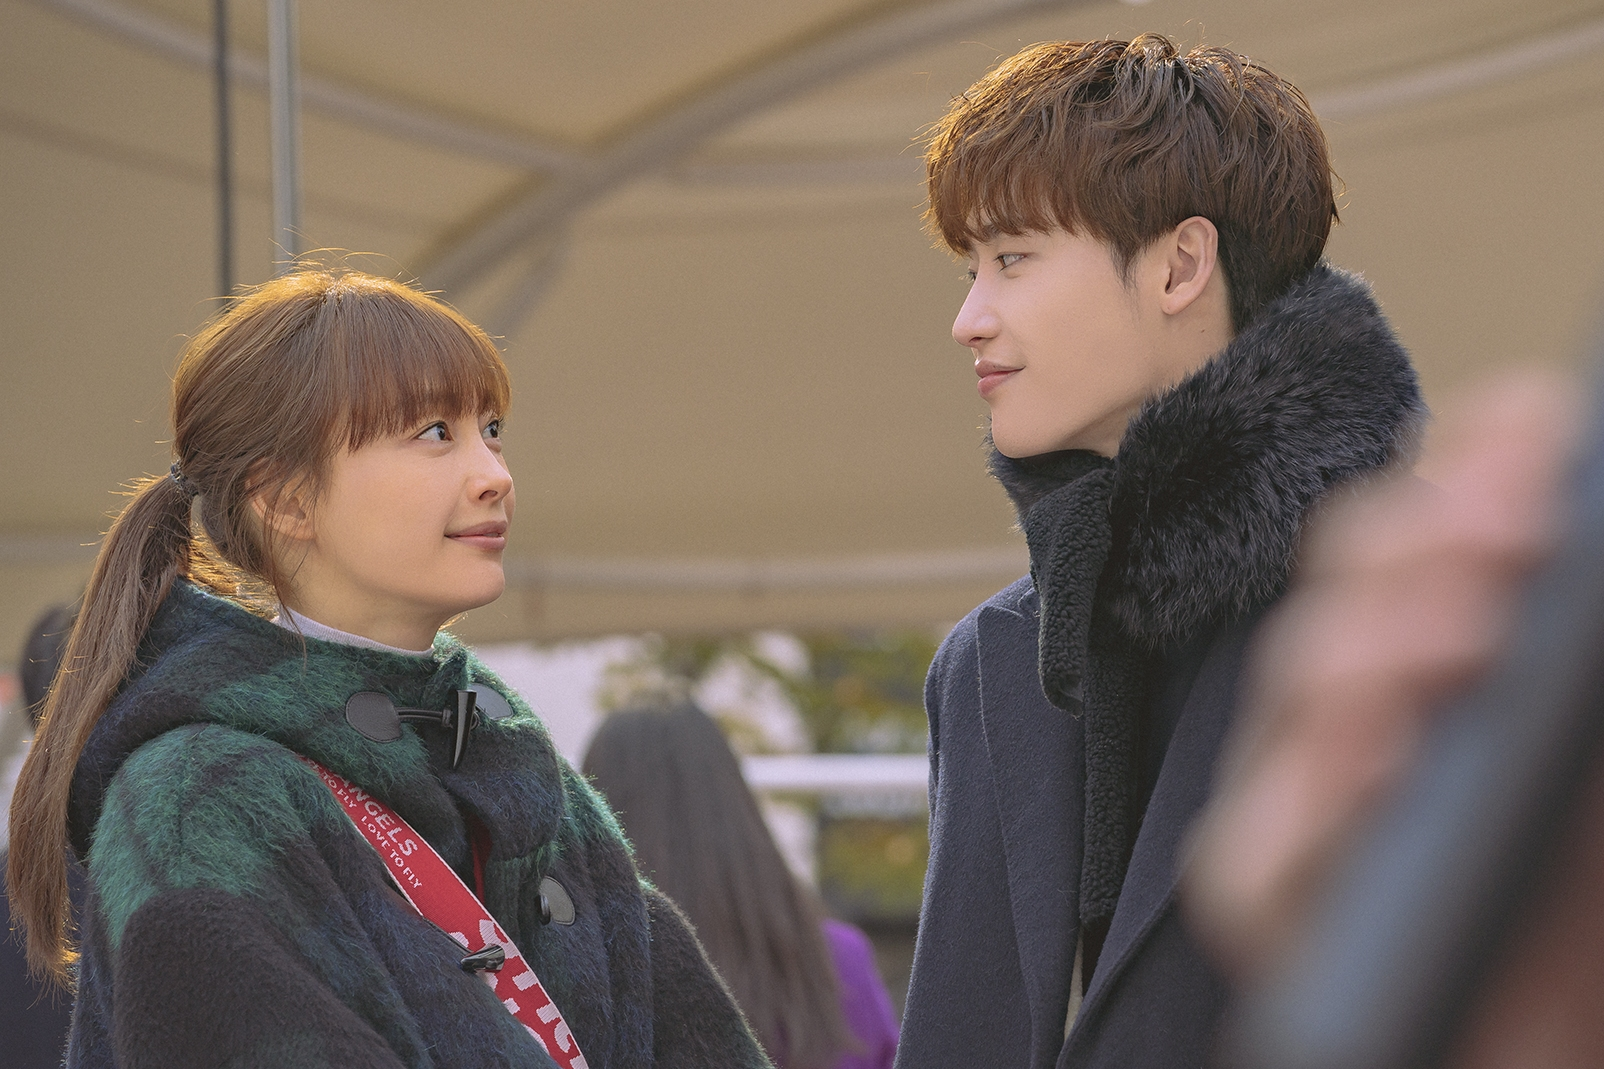 Eun-ho and Dan-yi has been in each other's lives for so long, it might be a little difficult for either to put their friendship at risk by dating each other (Netflix)